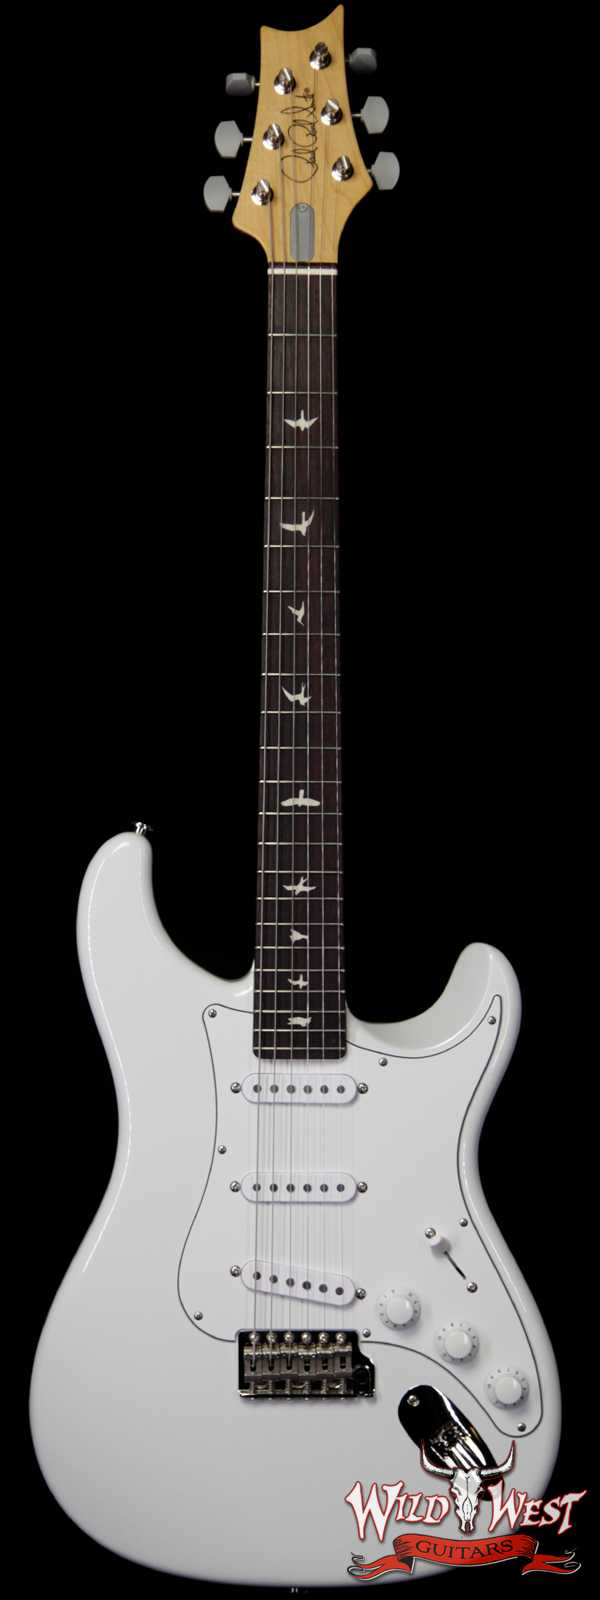 Paul Reed Smith PRS John Mayer Signature Model Silver Sky Rosewood Fingerboard Frost White